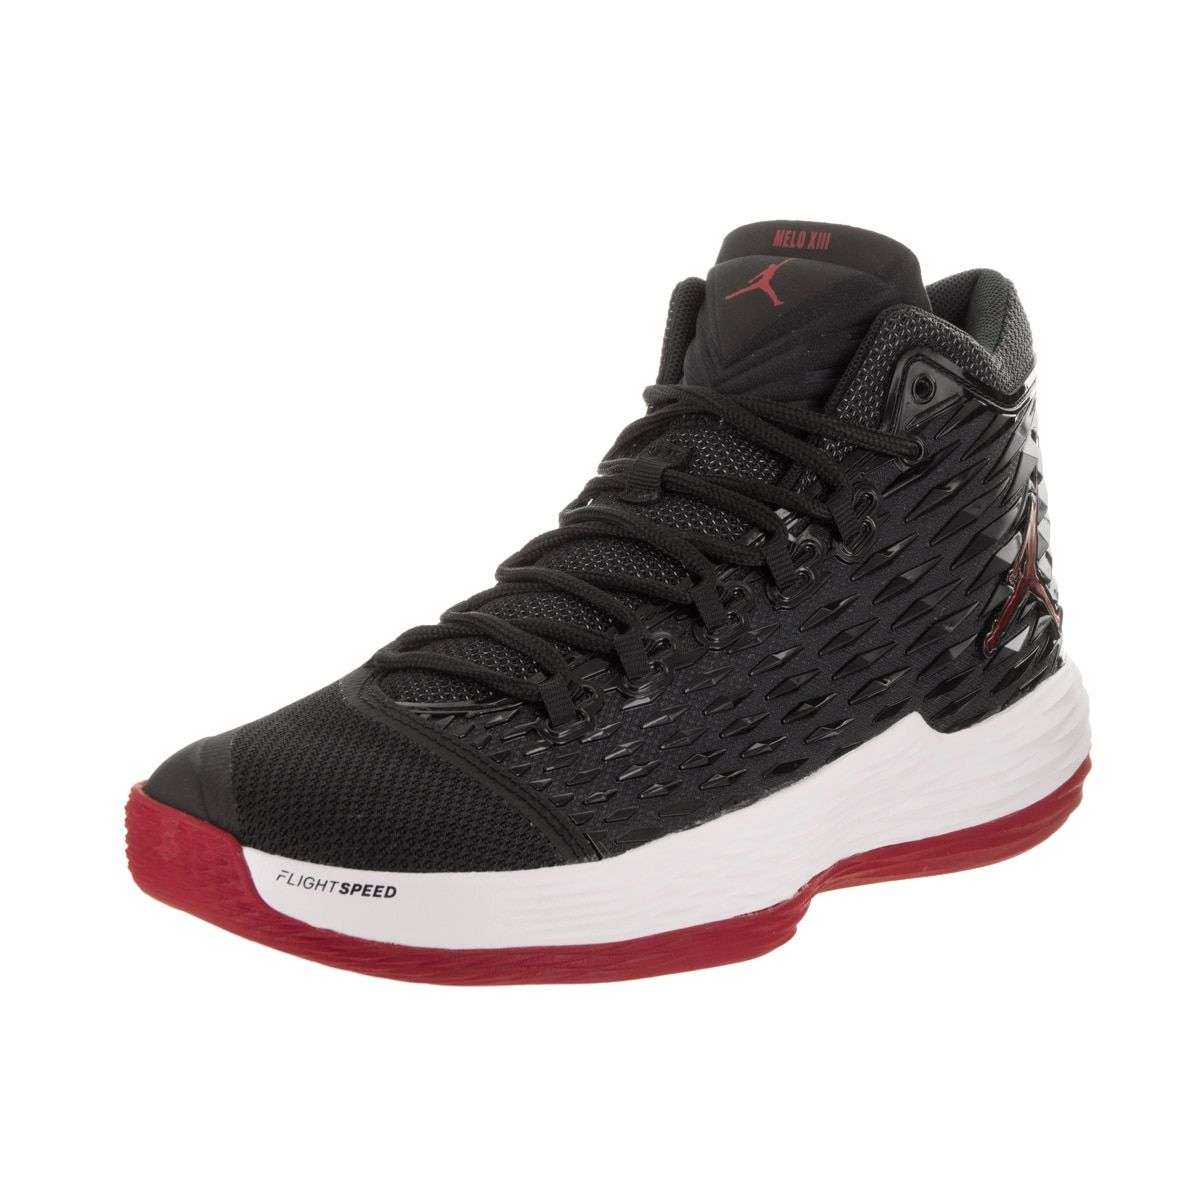 6e6825f9c3b Nike Jordan Men's Jordan Melo M13 /Red/White Basketball Shoe ...